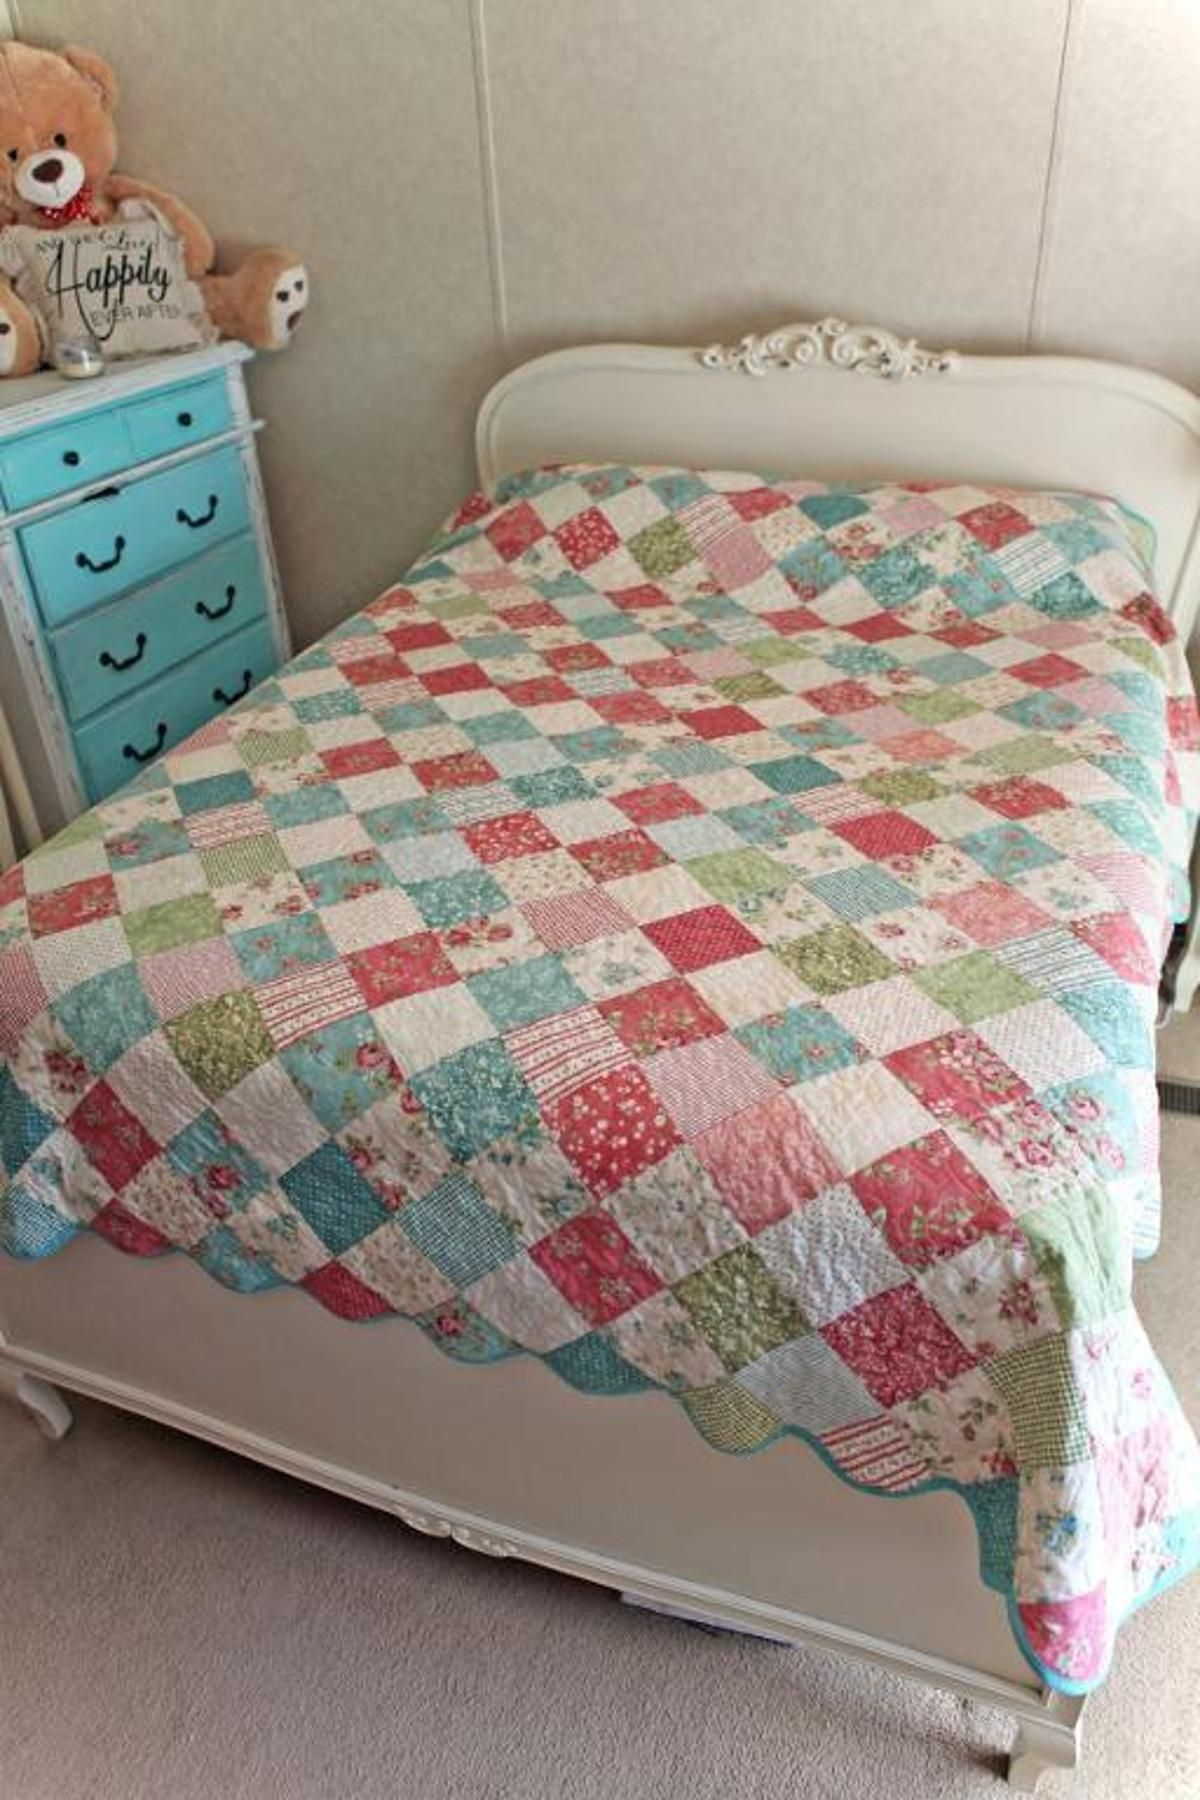 Simply Charming Full Size Bed Quilt